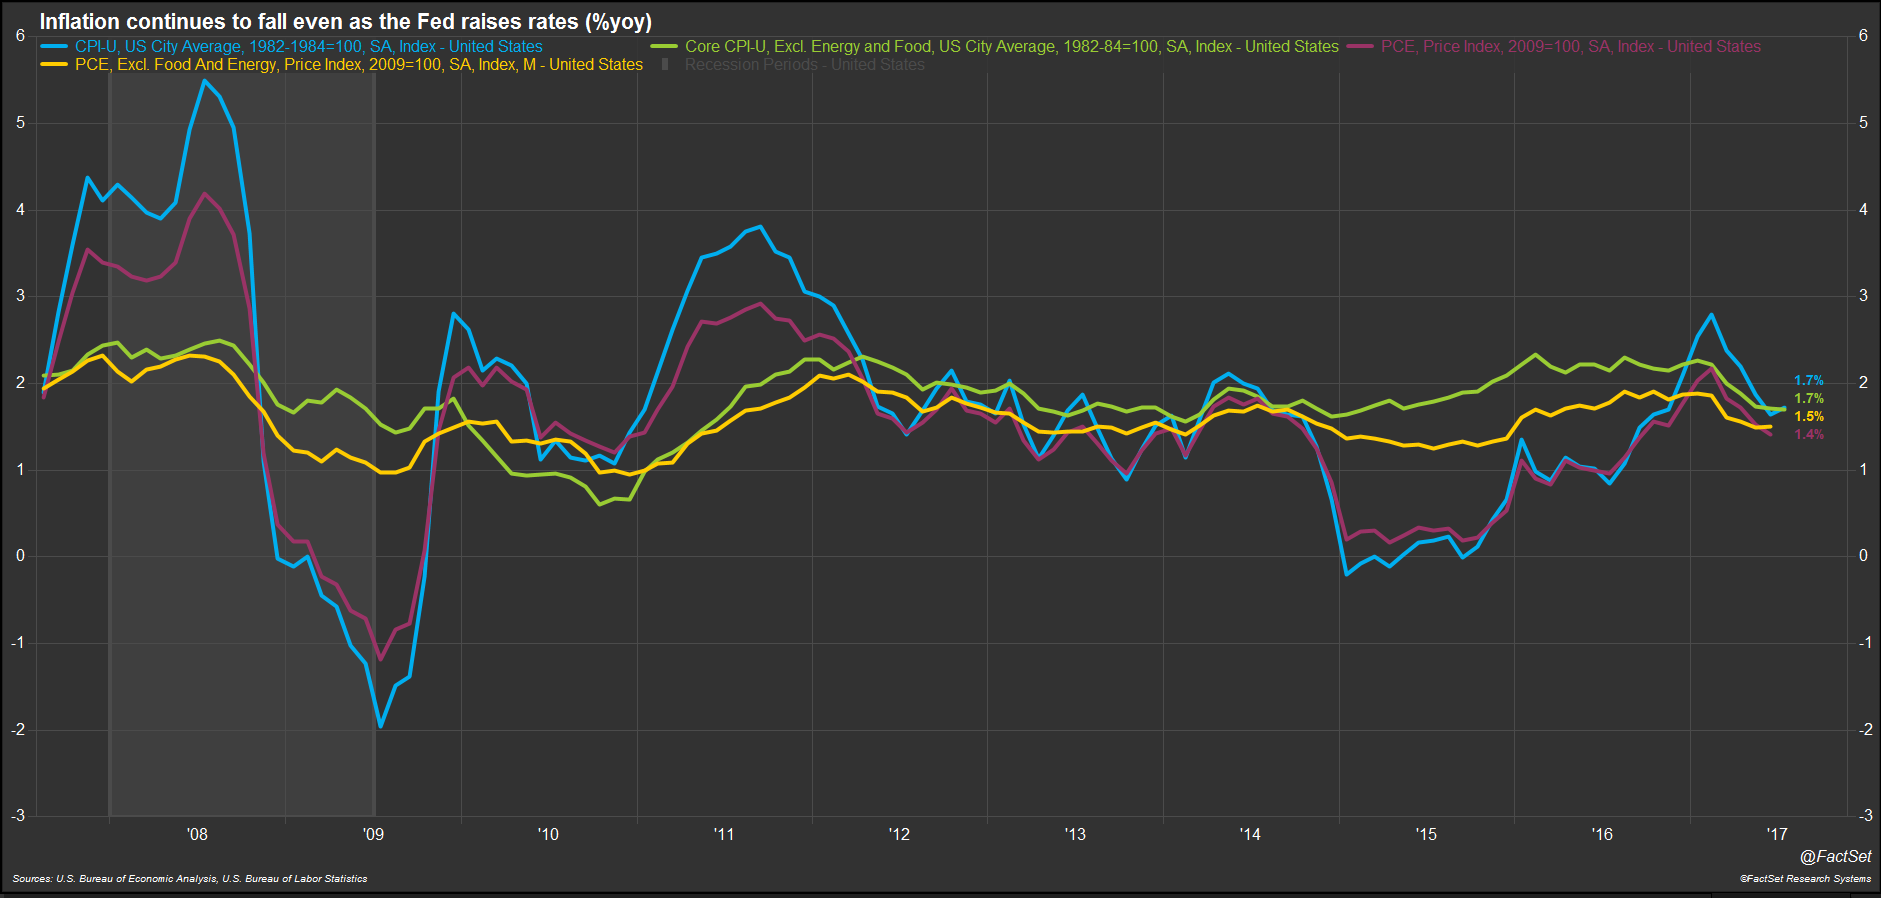 Consumer Price Inflation Slows Even as Fed Rate Tightening Continues